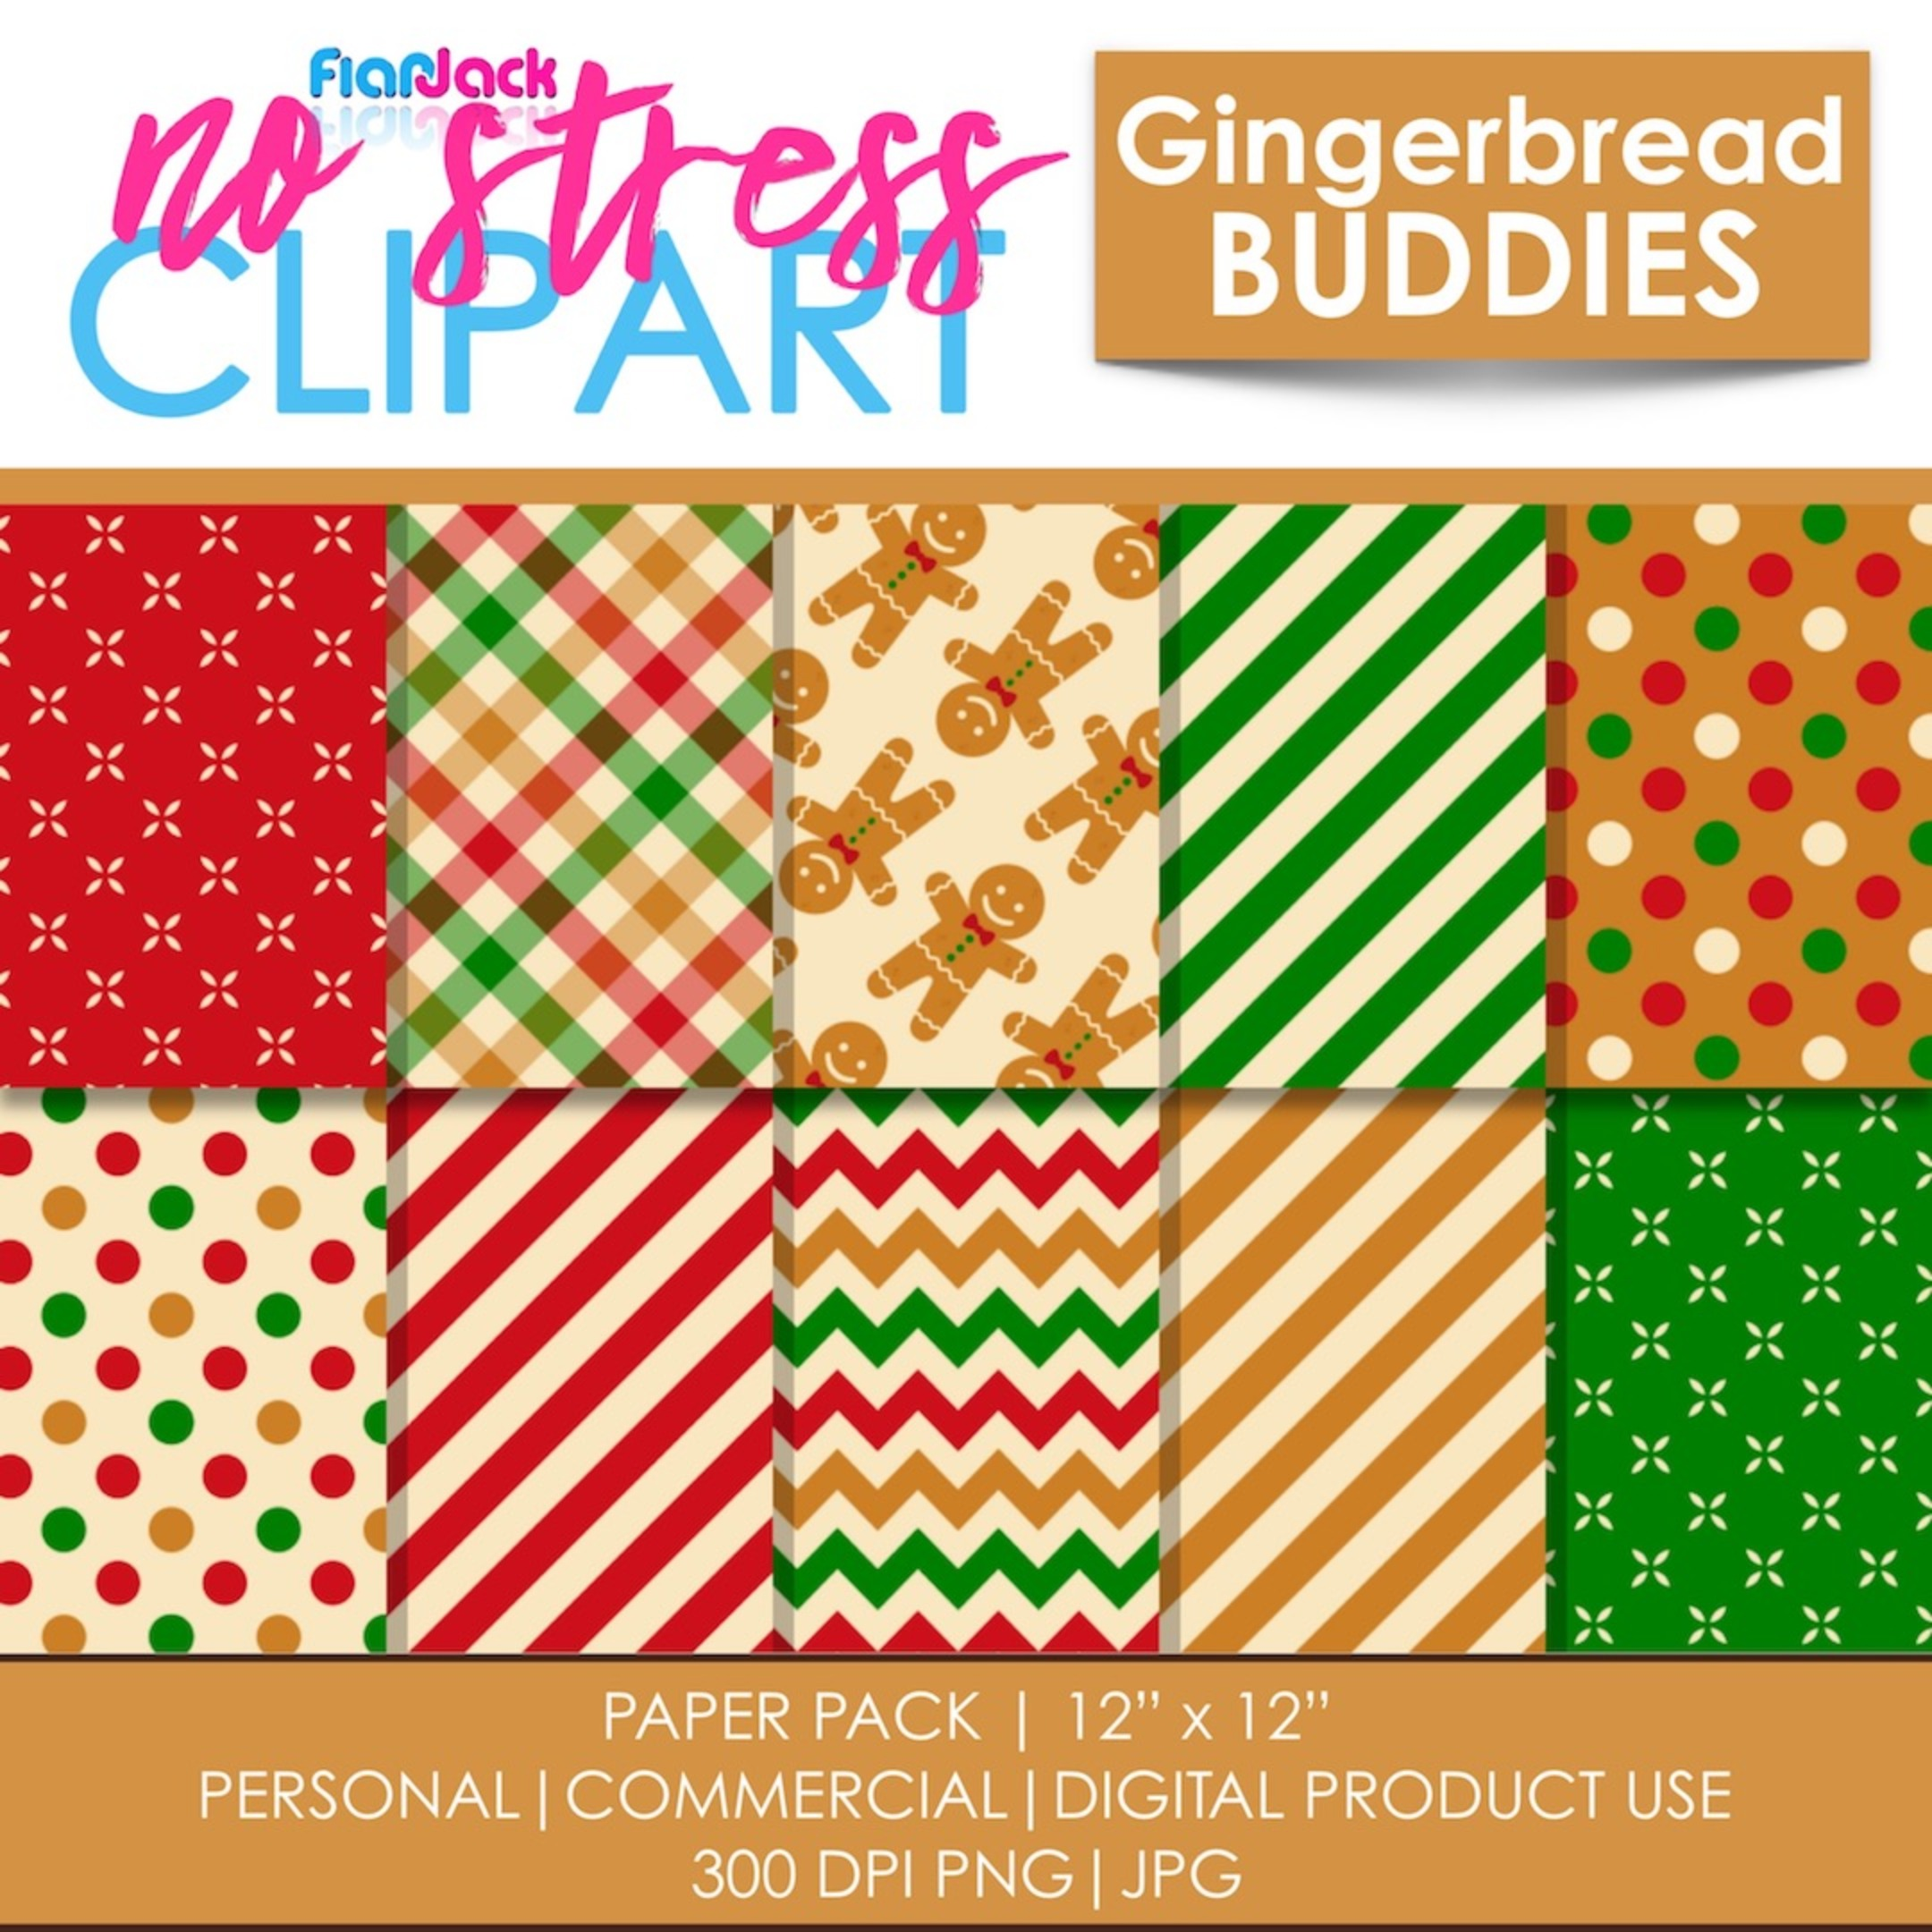 Gingerbread Buddies Digital Papers